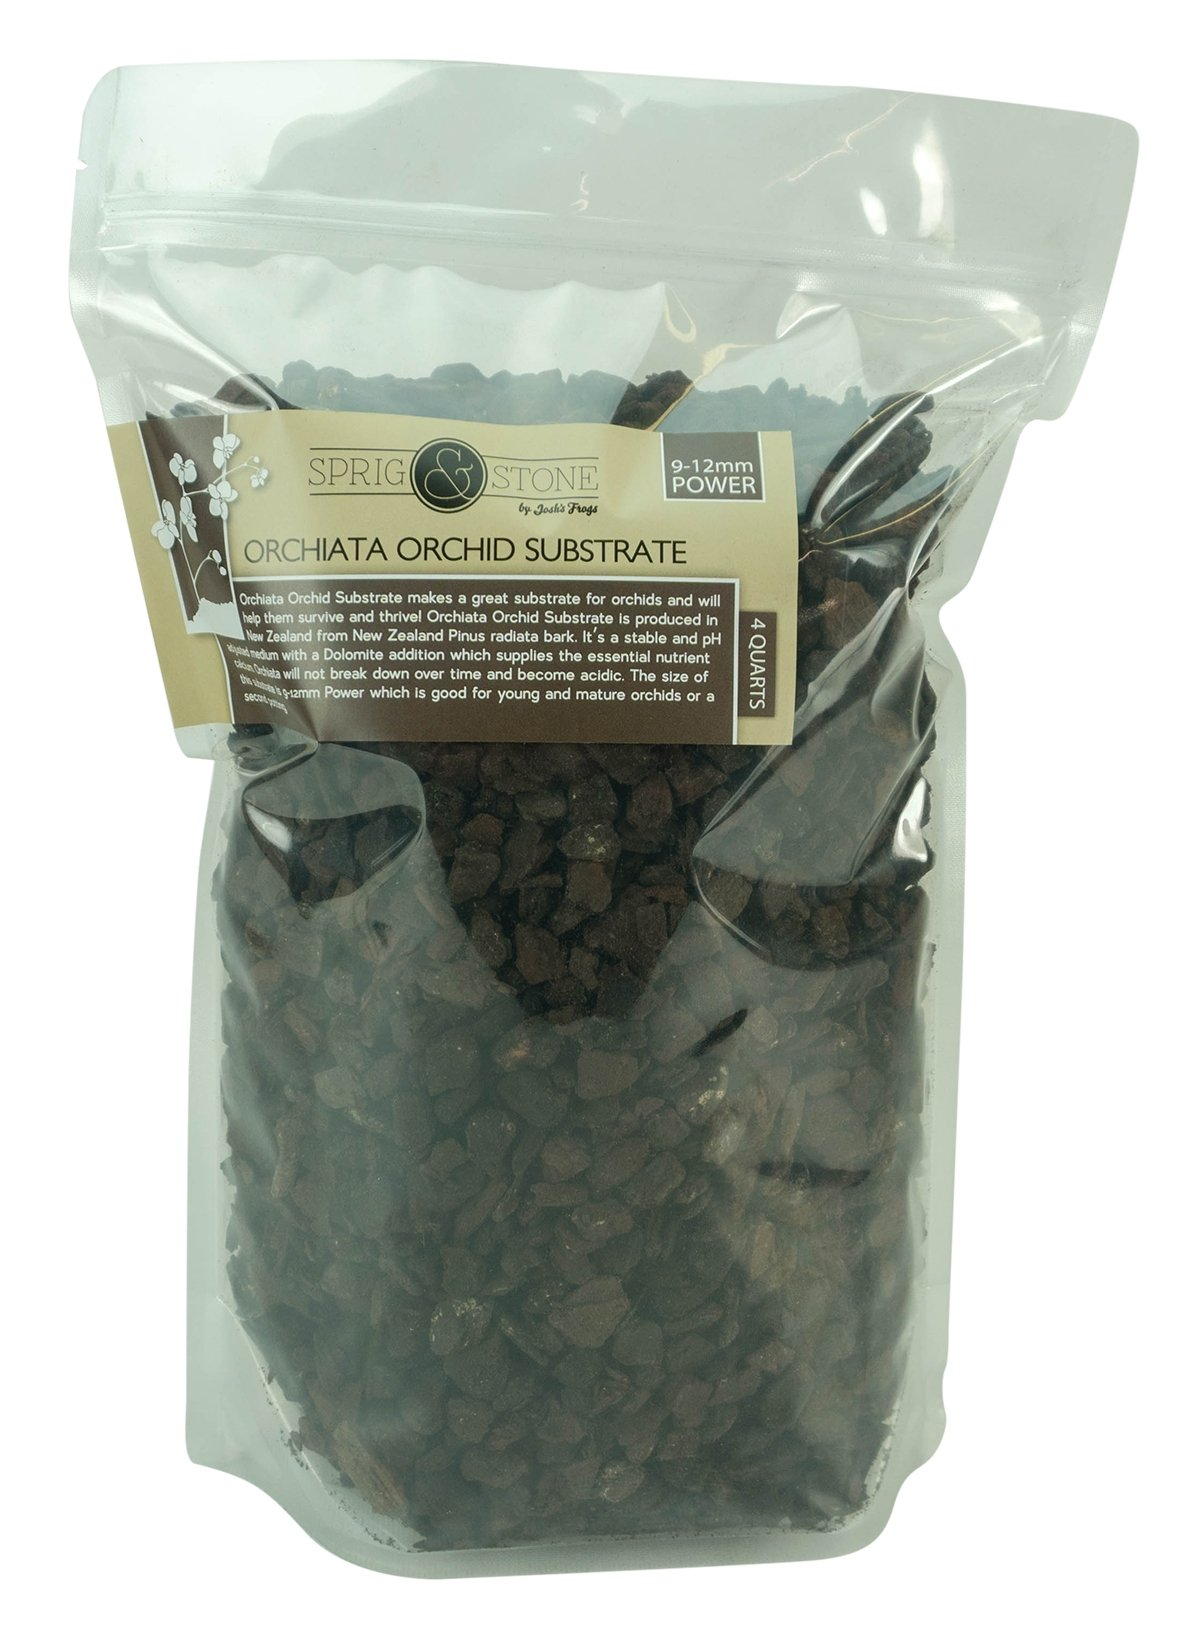 Orchiata Orchid Substrate - 9-12mm POWER (4 Quart)